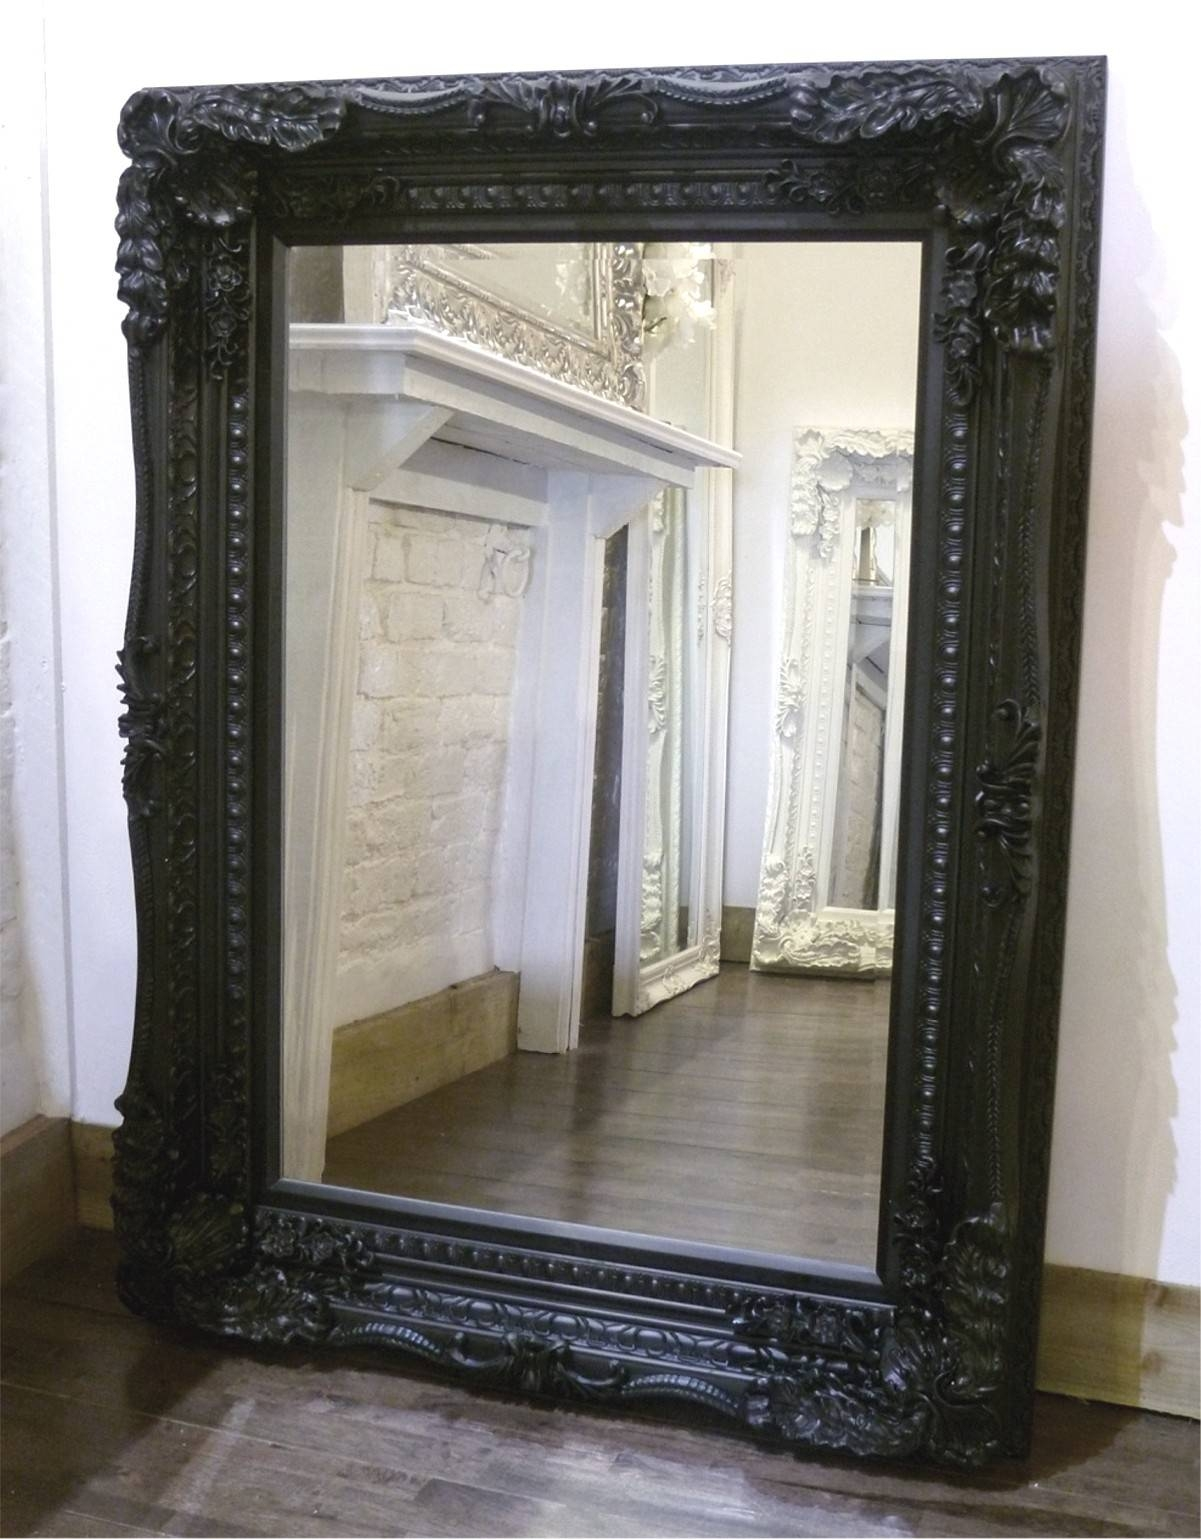 The Best Value Black Chelsea Ornate Mirrors Online. with regard to Black Ornate Mirrors (Image 13 of 15)